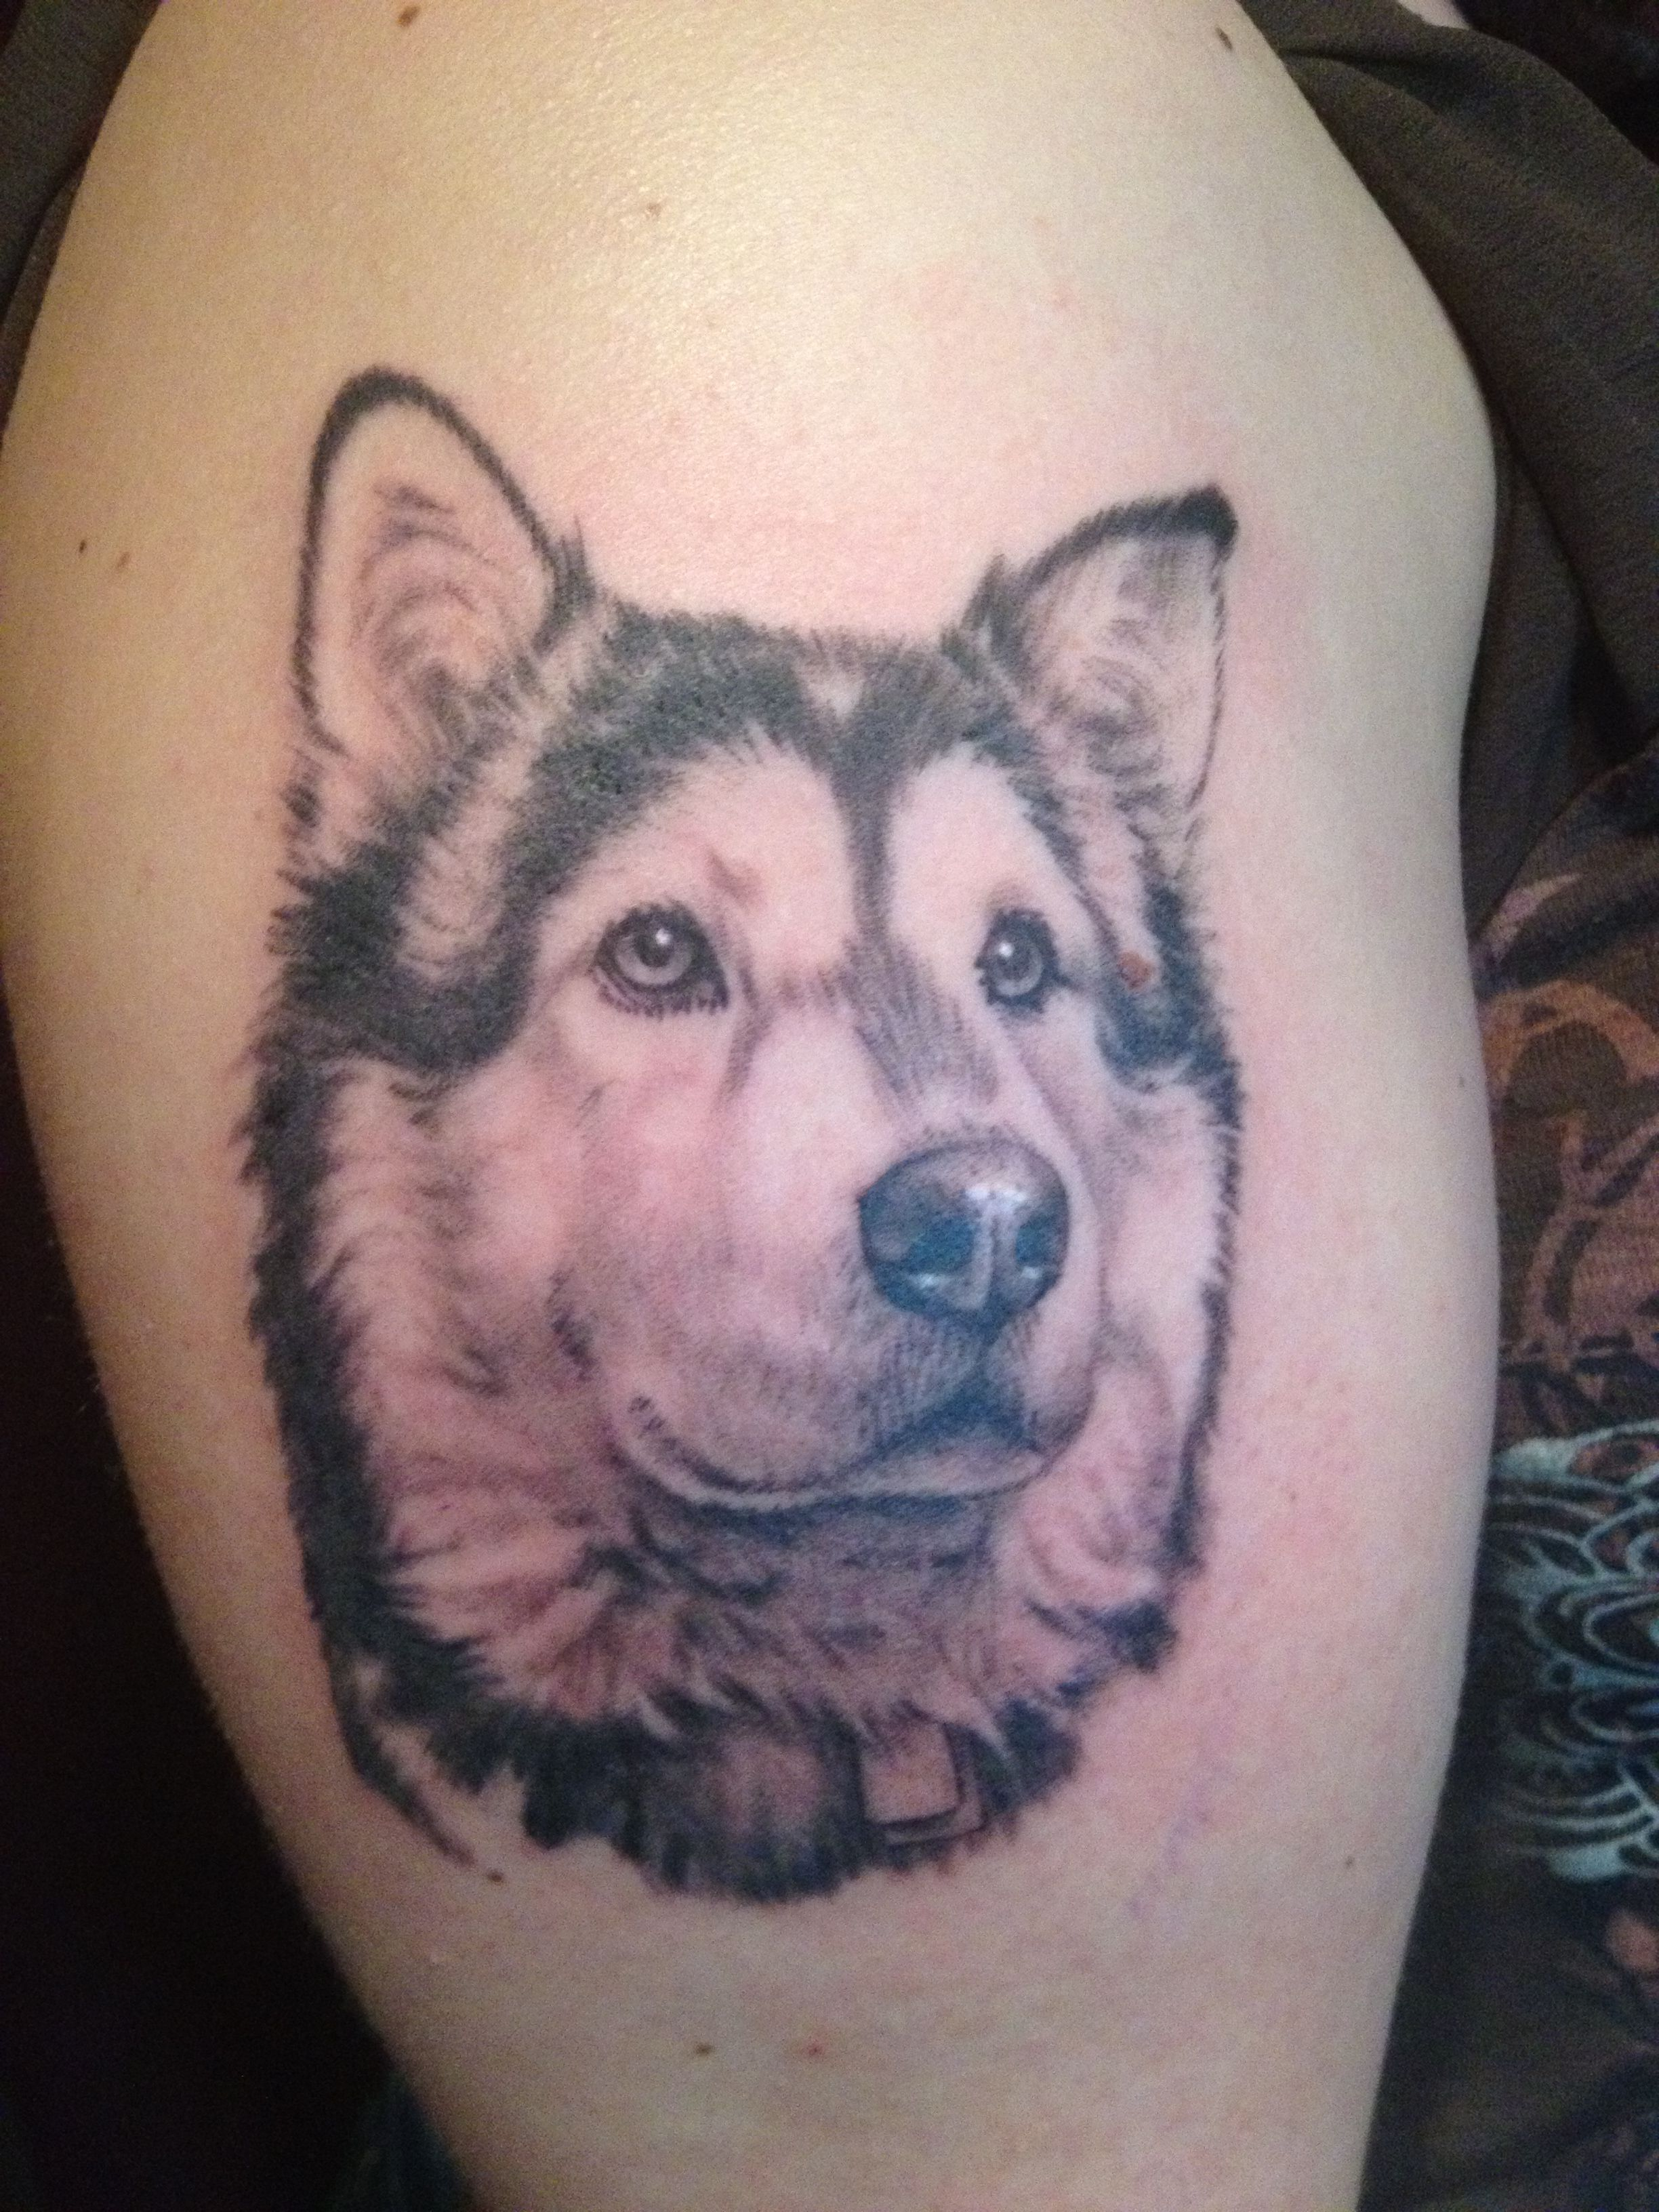 Husky Tattoo Image By Matthew Mattison On Tattoos Bookish